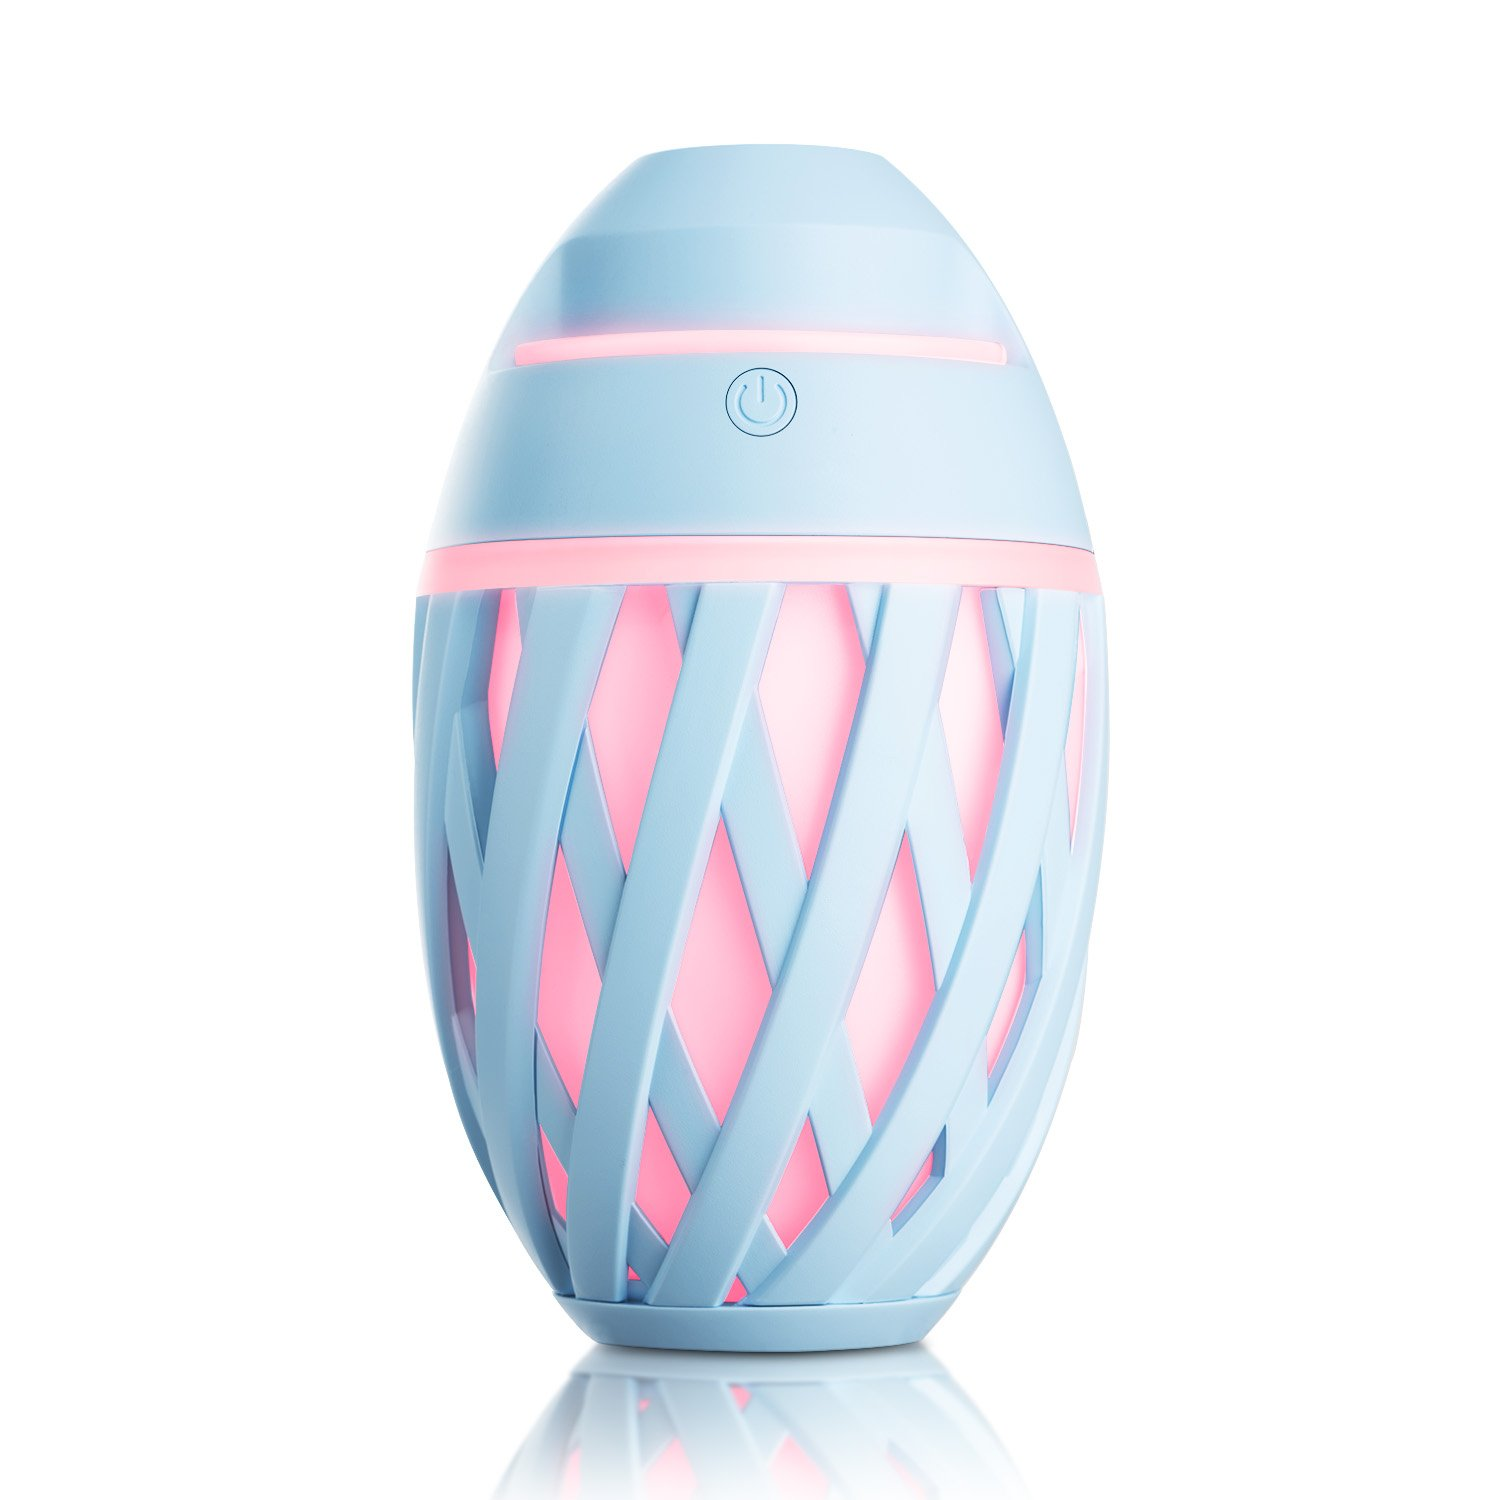 SRIWATANA Mini Cool Mist Humidifier, Olive Portable USB Humidifier Whisper Quiet and Colorful LED Lights Air Humidifier for Home, Car, Office and More